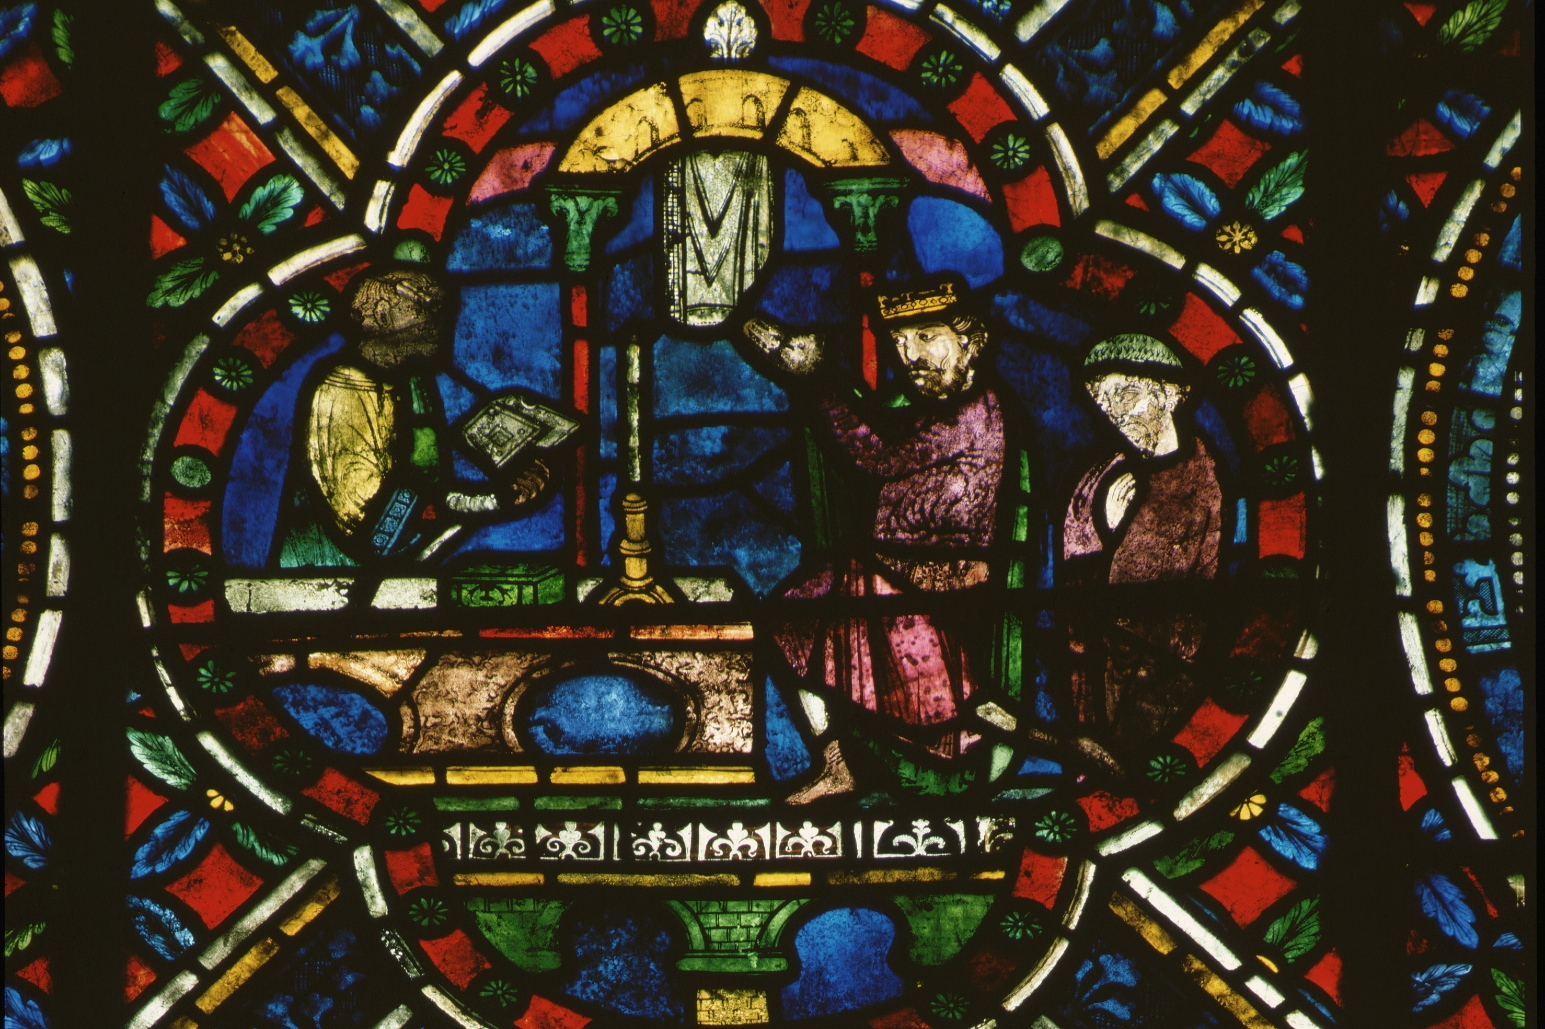 A stained glass window in Canterbury cathedral depicts Henry II doing penance at the tomb of St Thomas